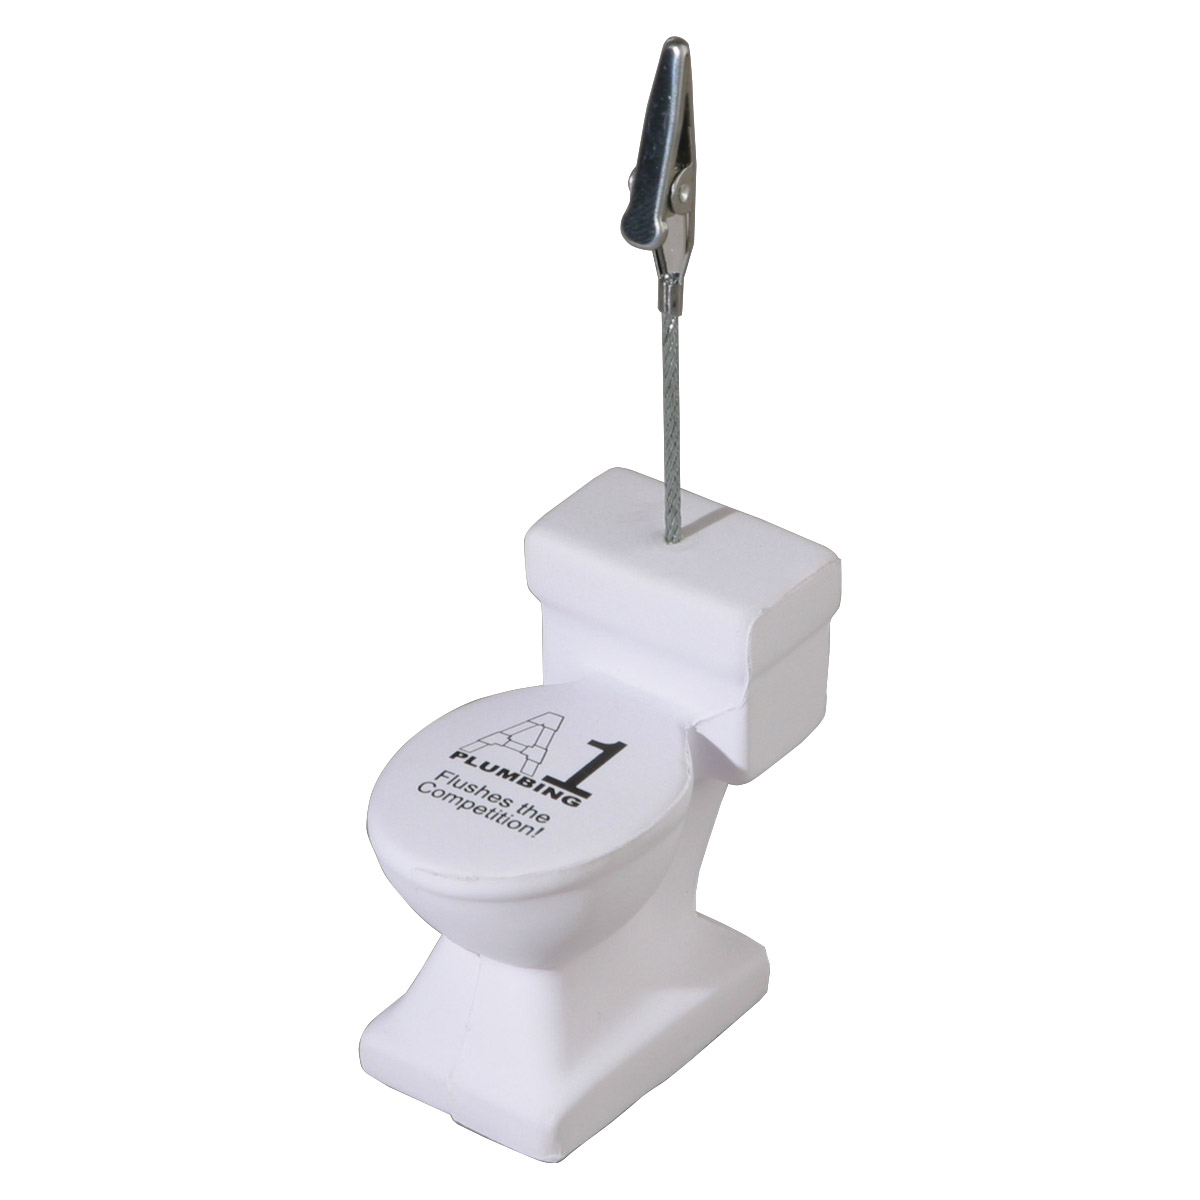 Toilet Stress Reliever Memo Holder, LMH-TL06 - 1 Colour Imprint